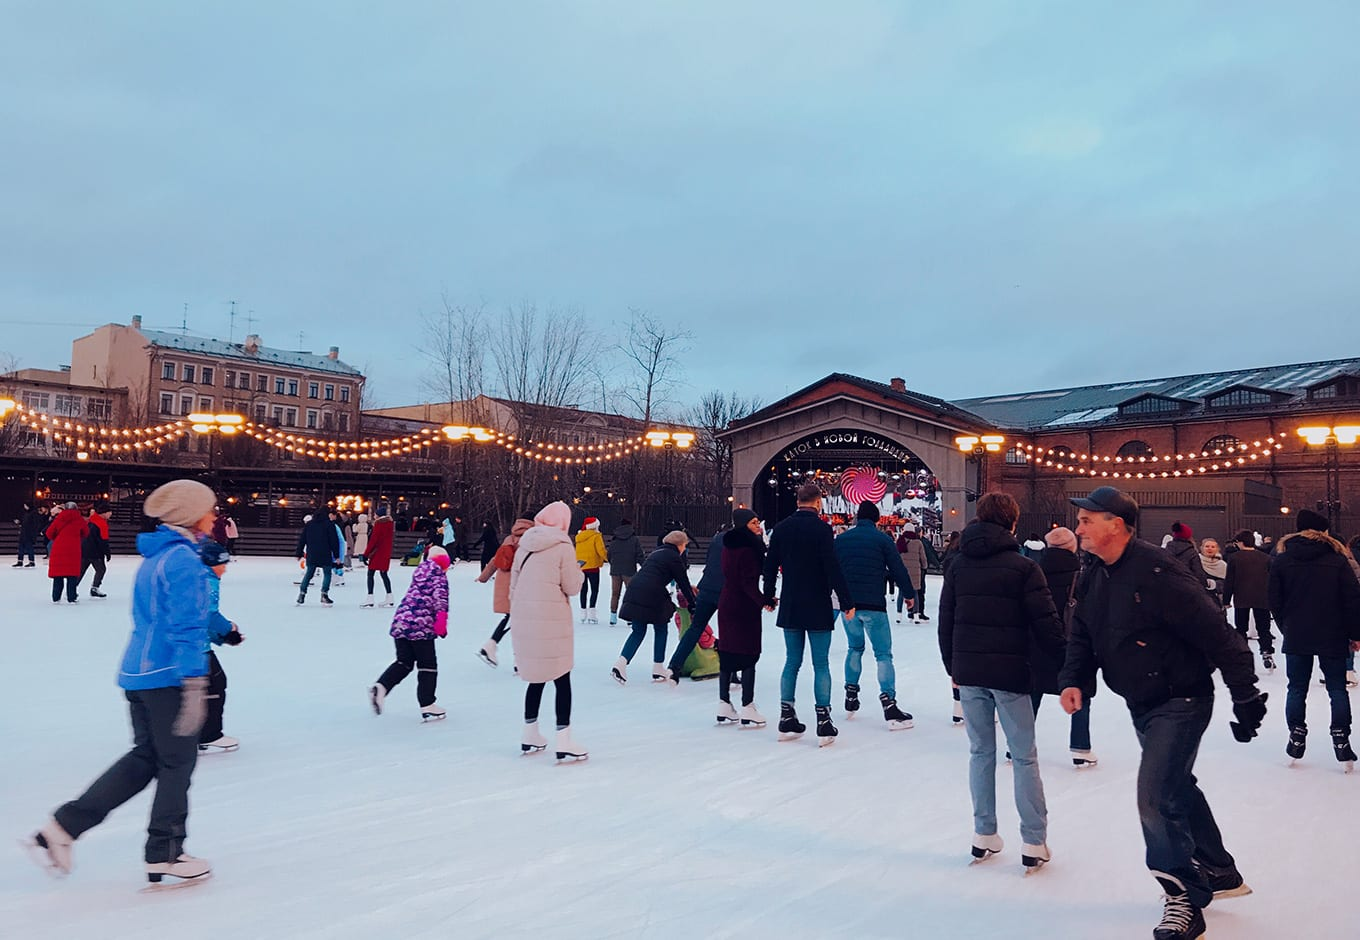 Best Places To Go Ice Skating In NYC: 2020-2021